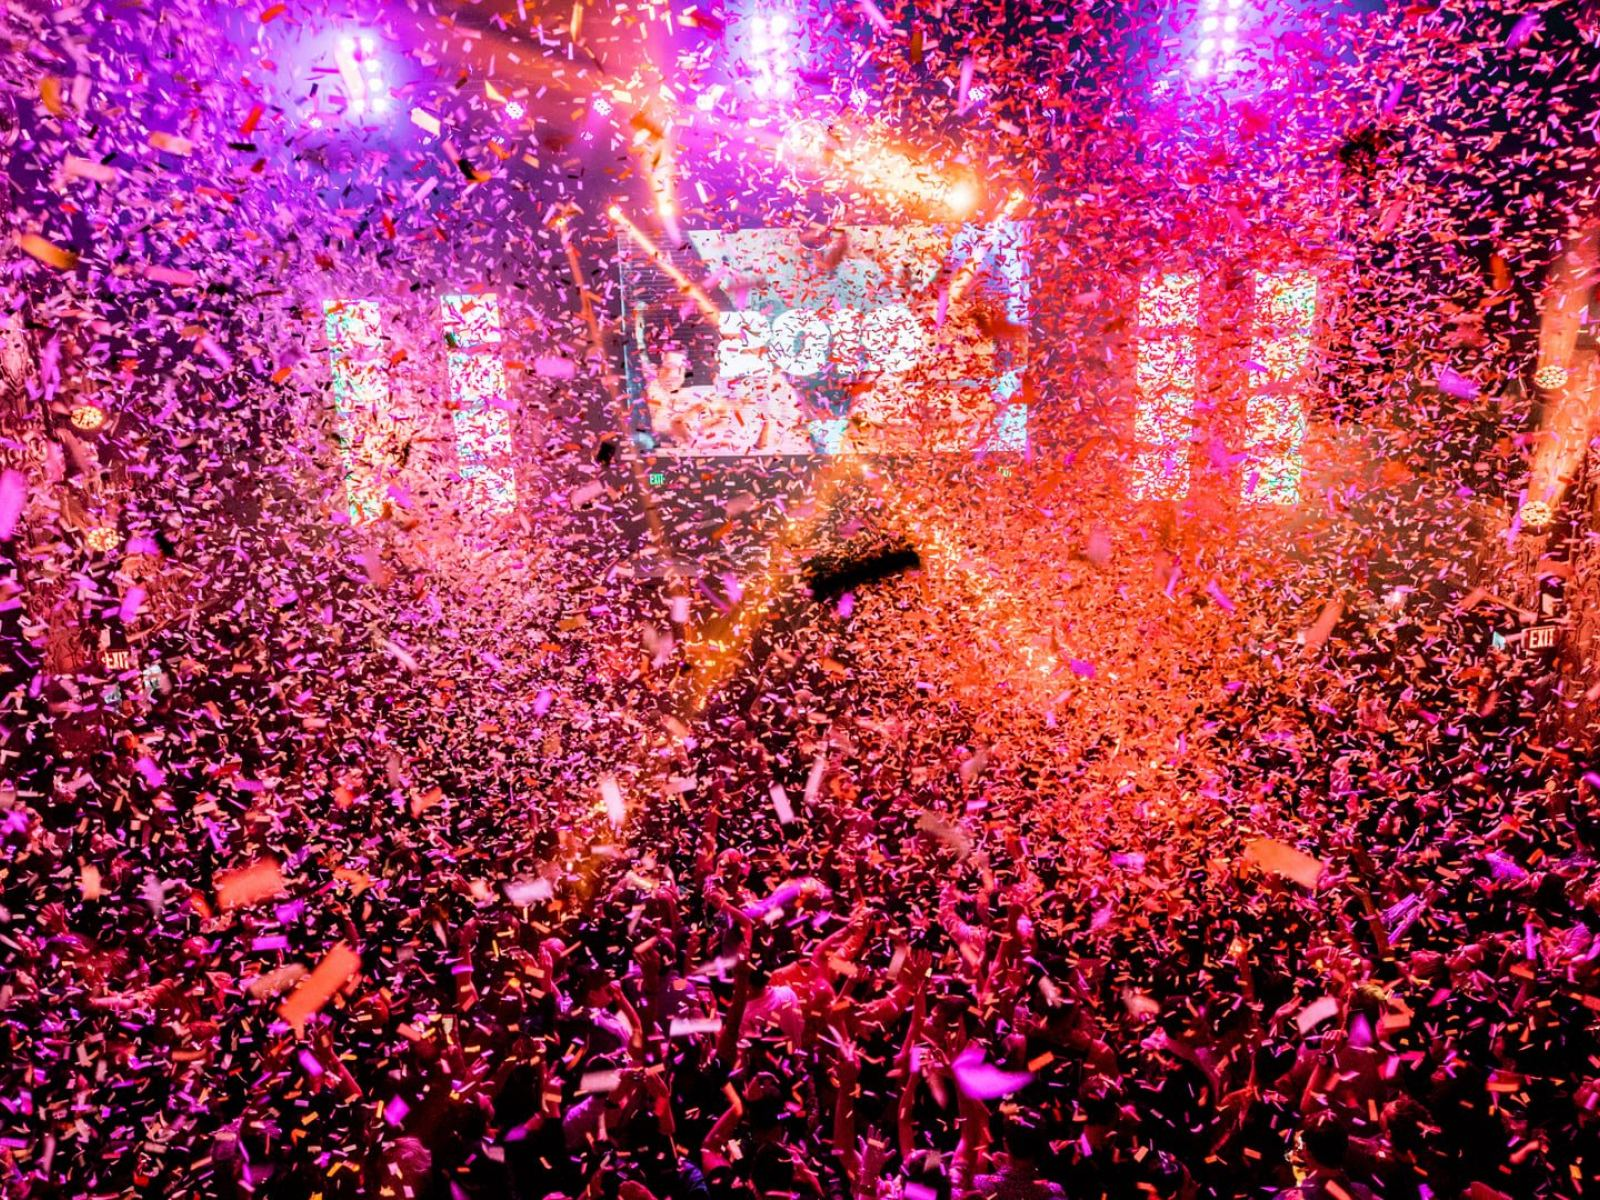 Happy New Year confetti explosion at Minimal Effort NYE 2019